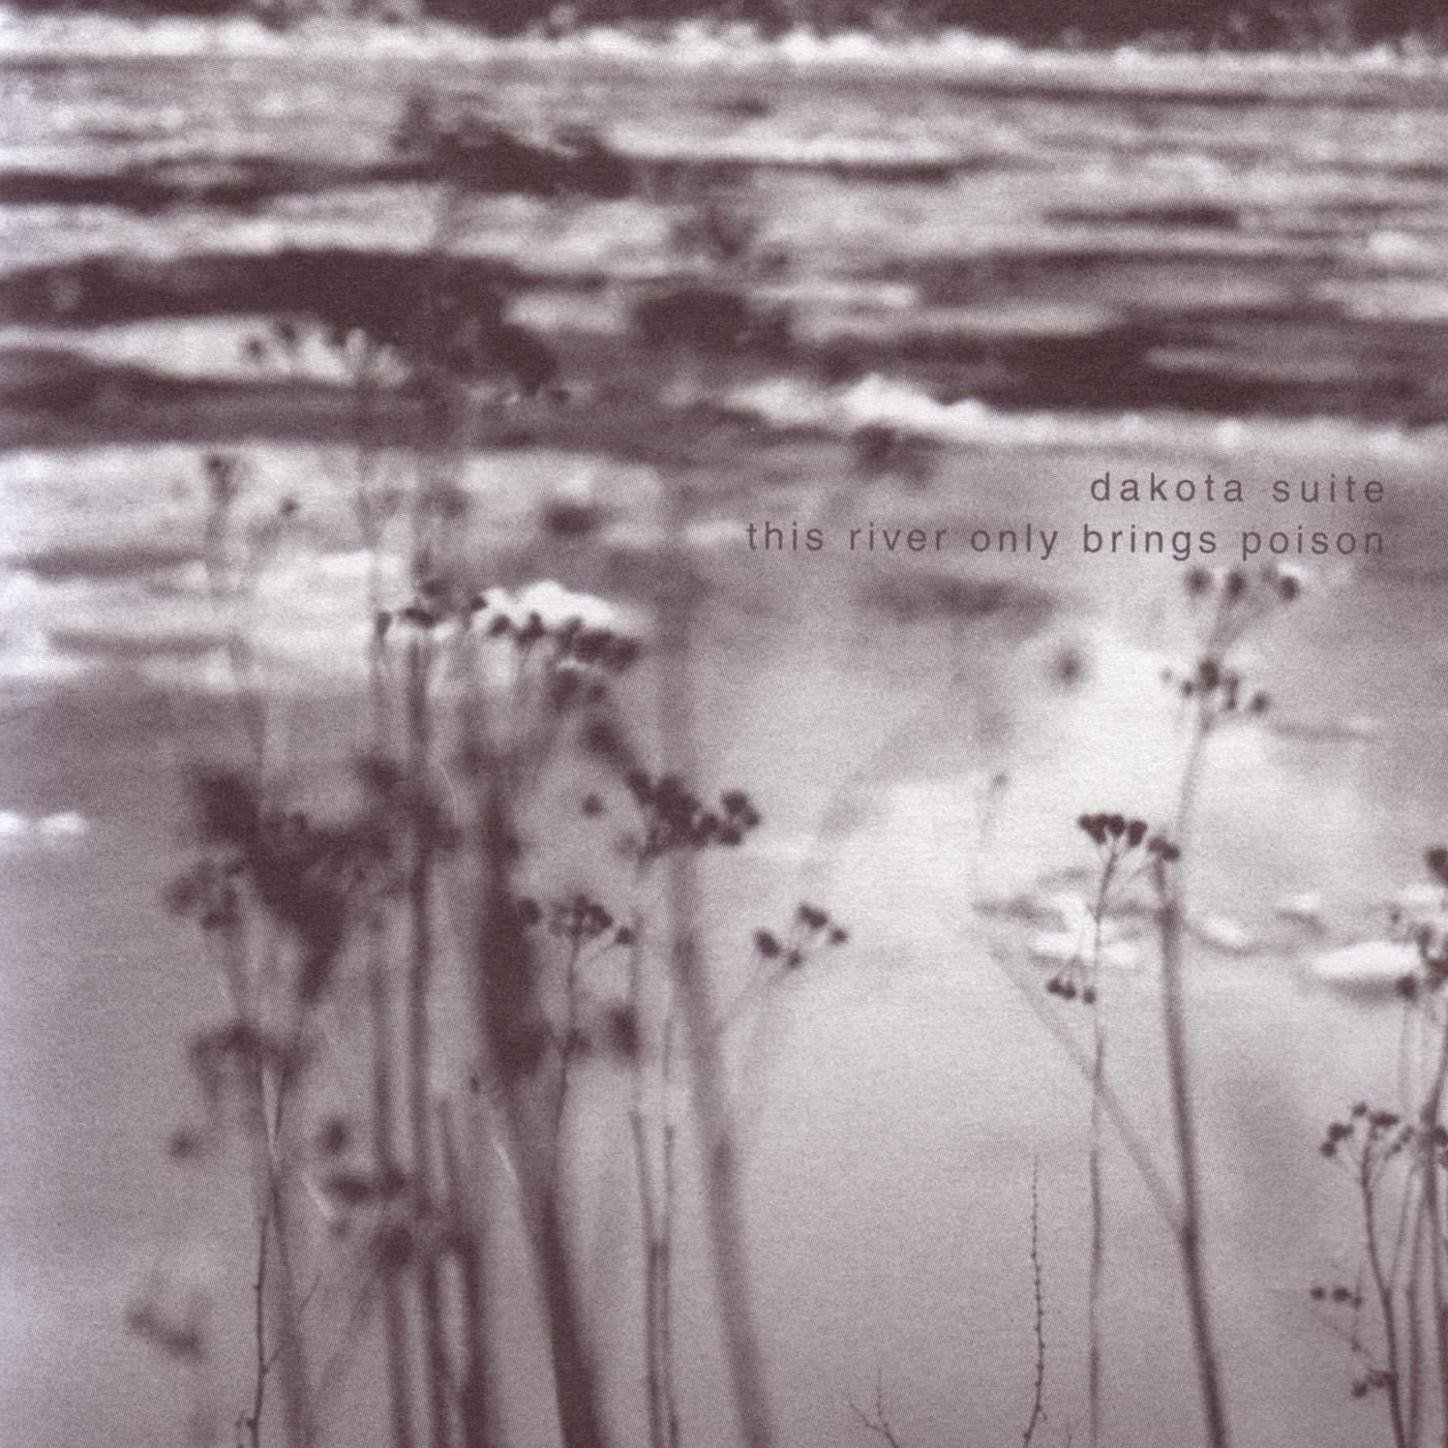 Dakota Suite - This River Only Brings Poison (2003) [FLAC] Download